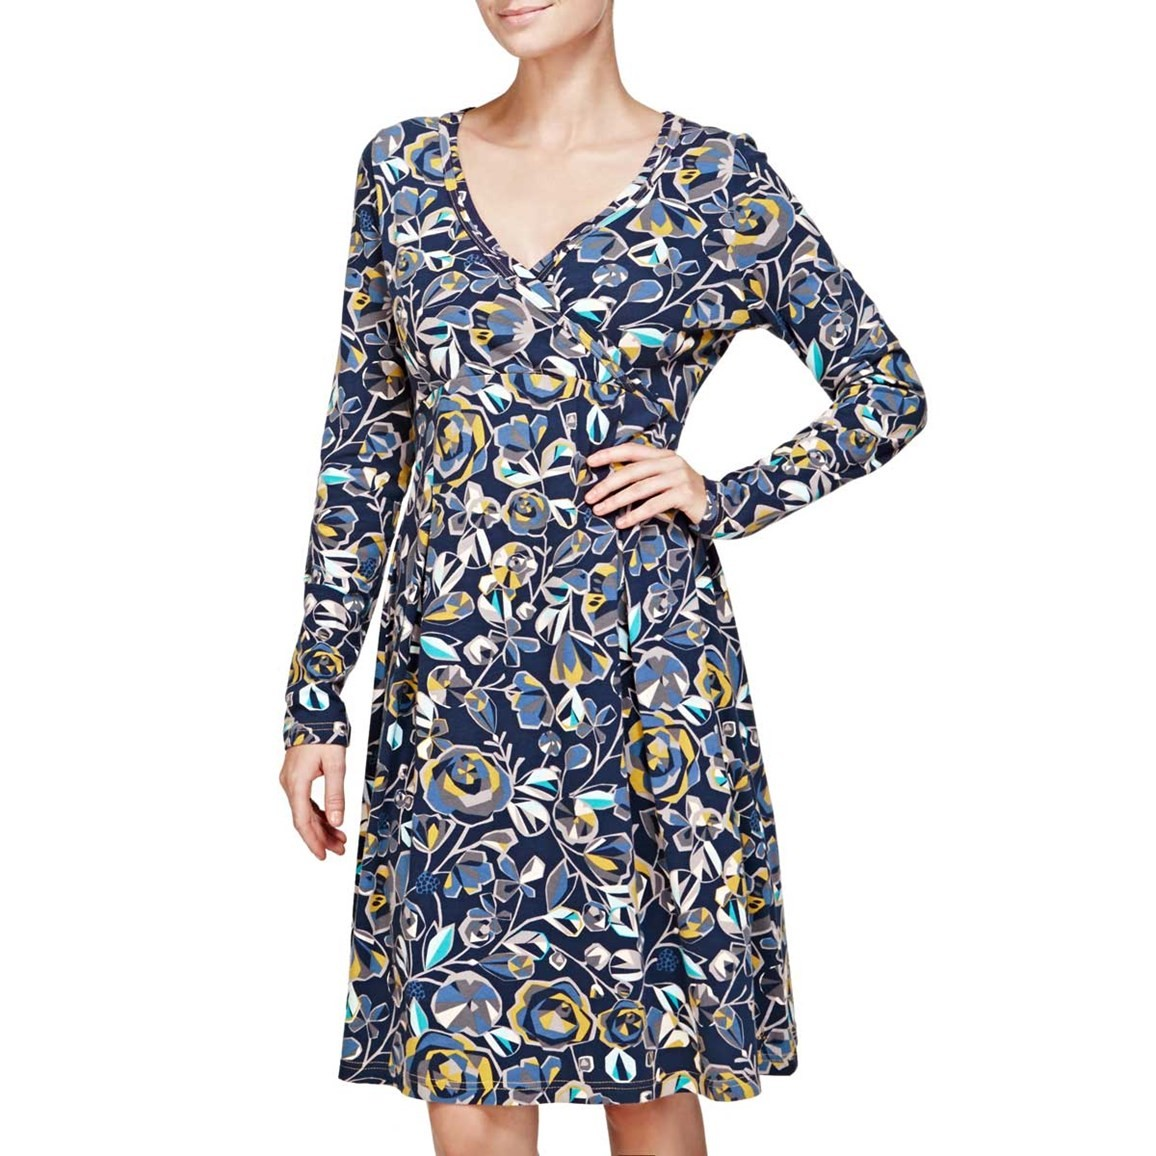 Drobak Printed Woven Dress with Cross Over Neckline Dark Navy